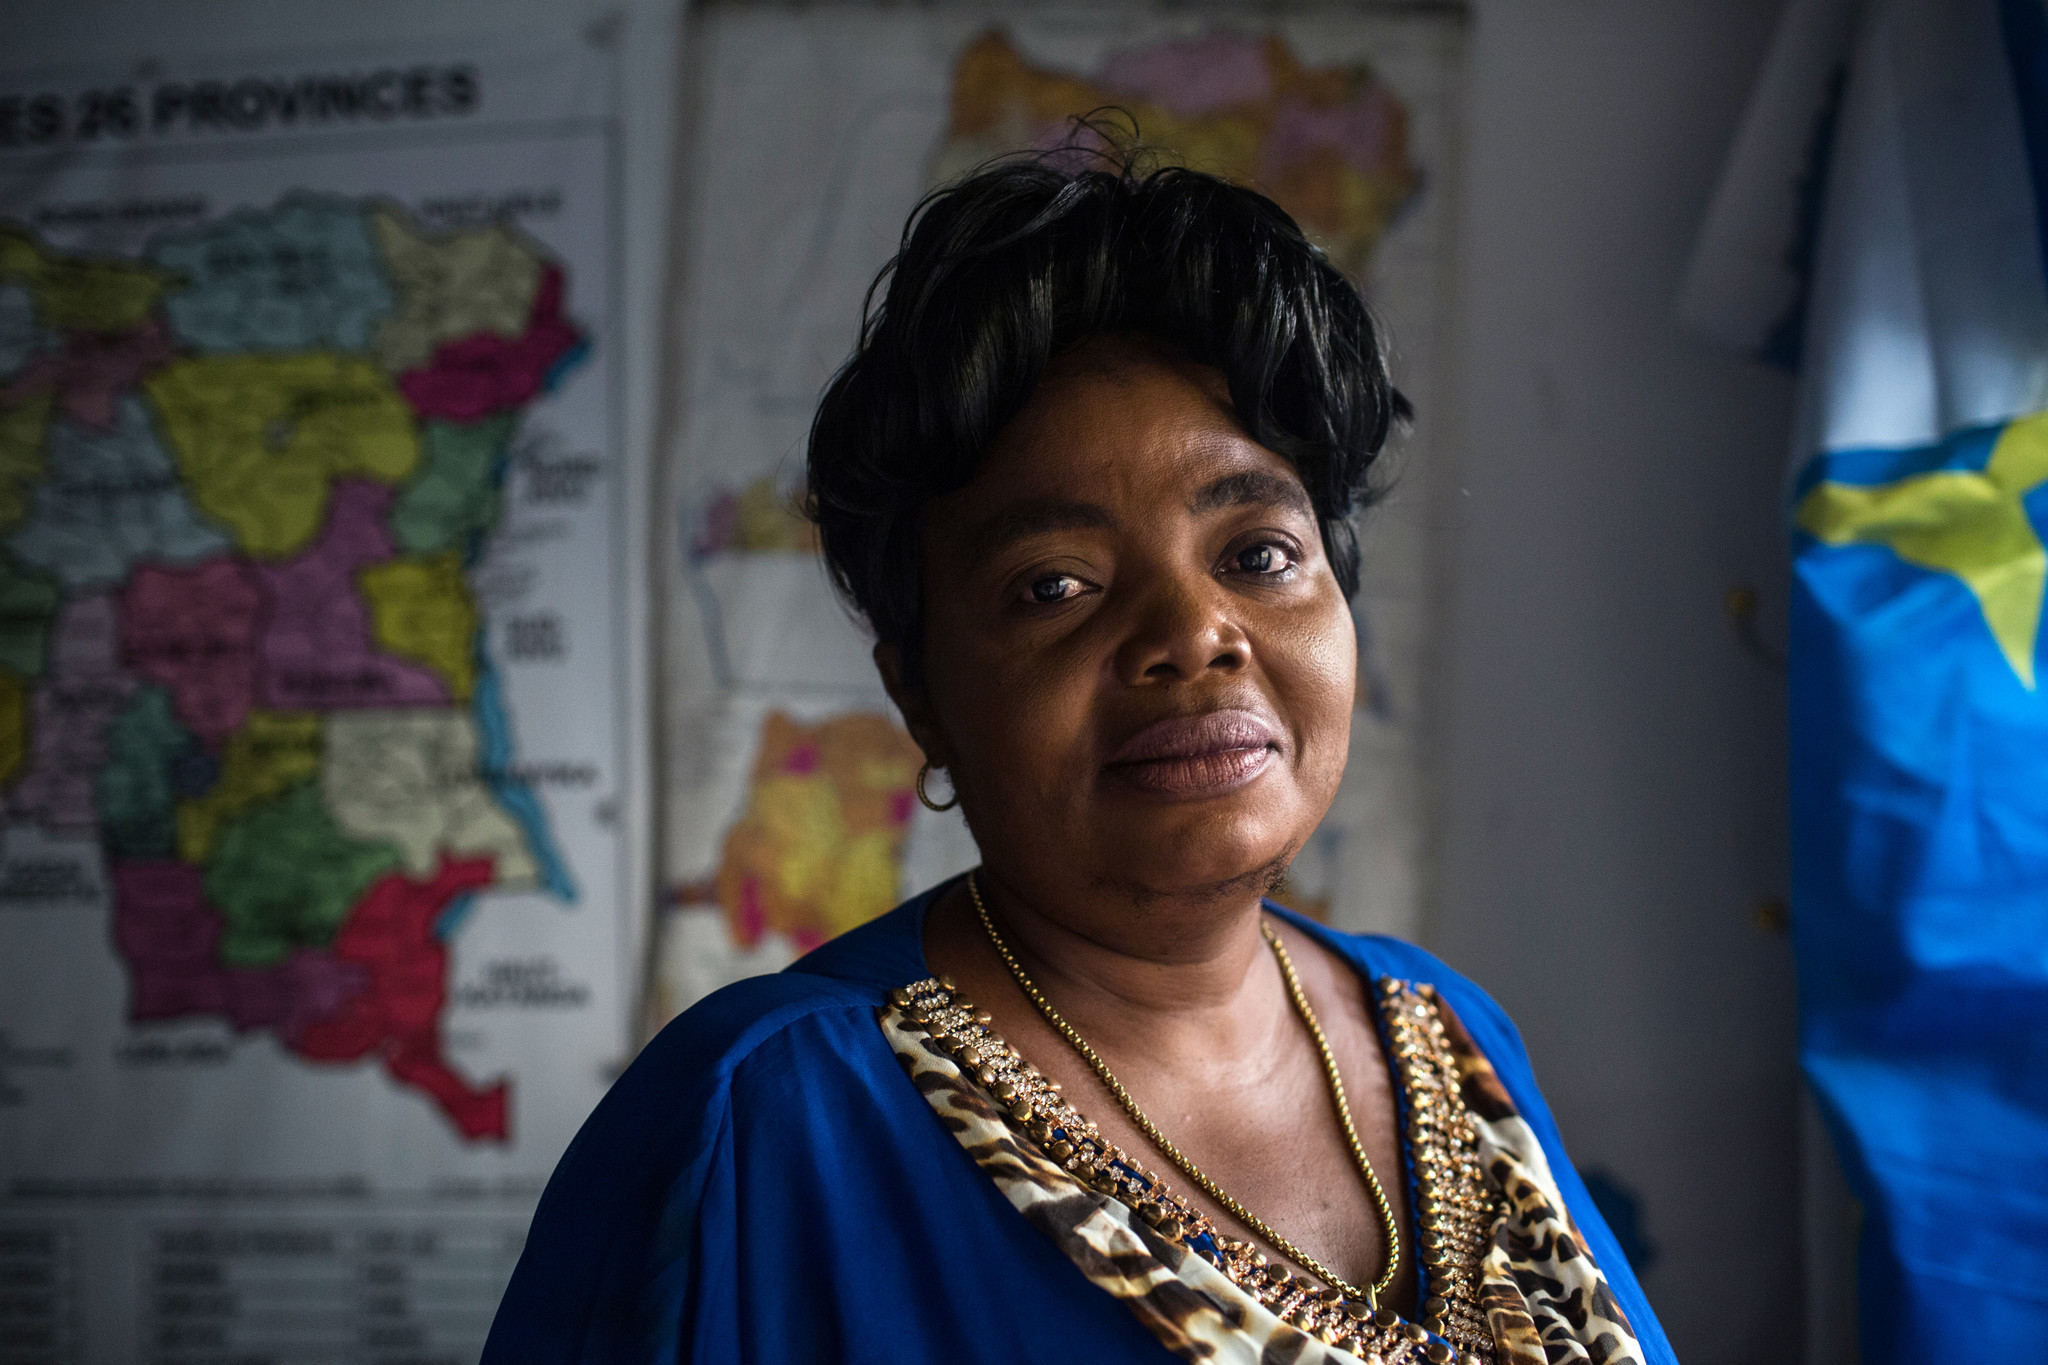 Women political candidates in DRC